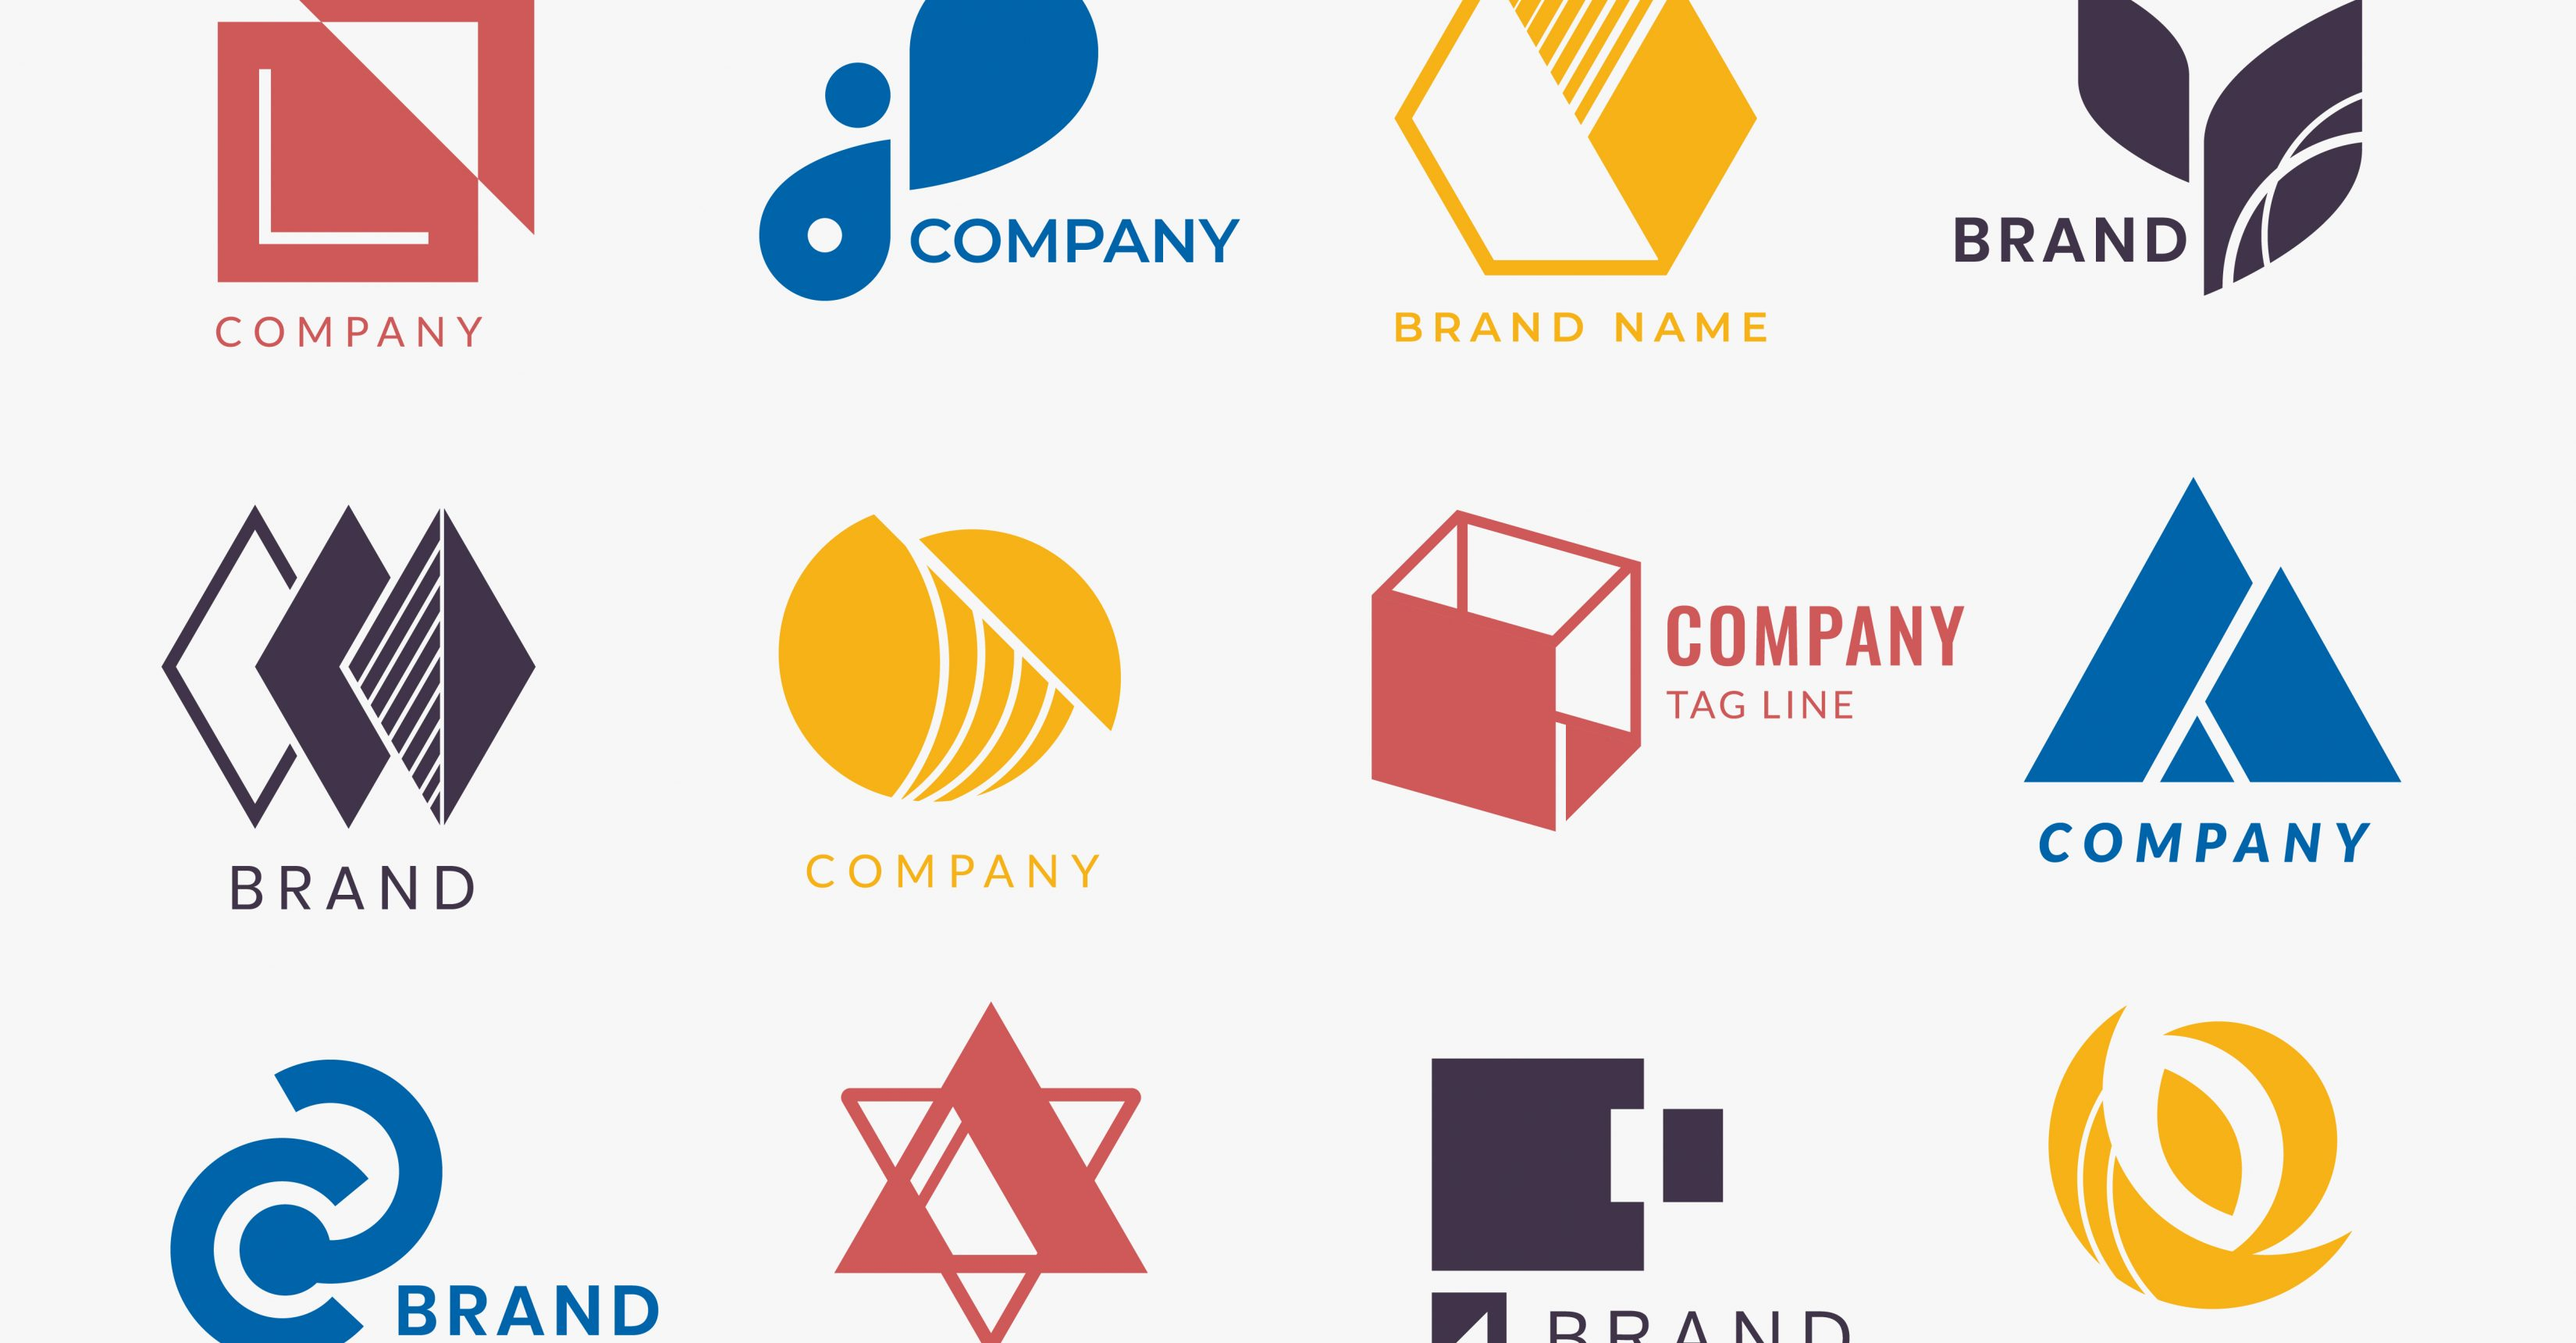 Company branding logo designs vector collection